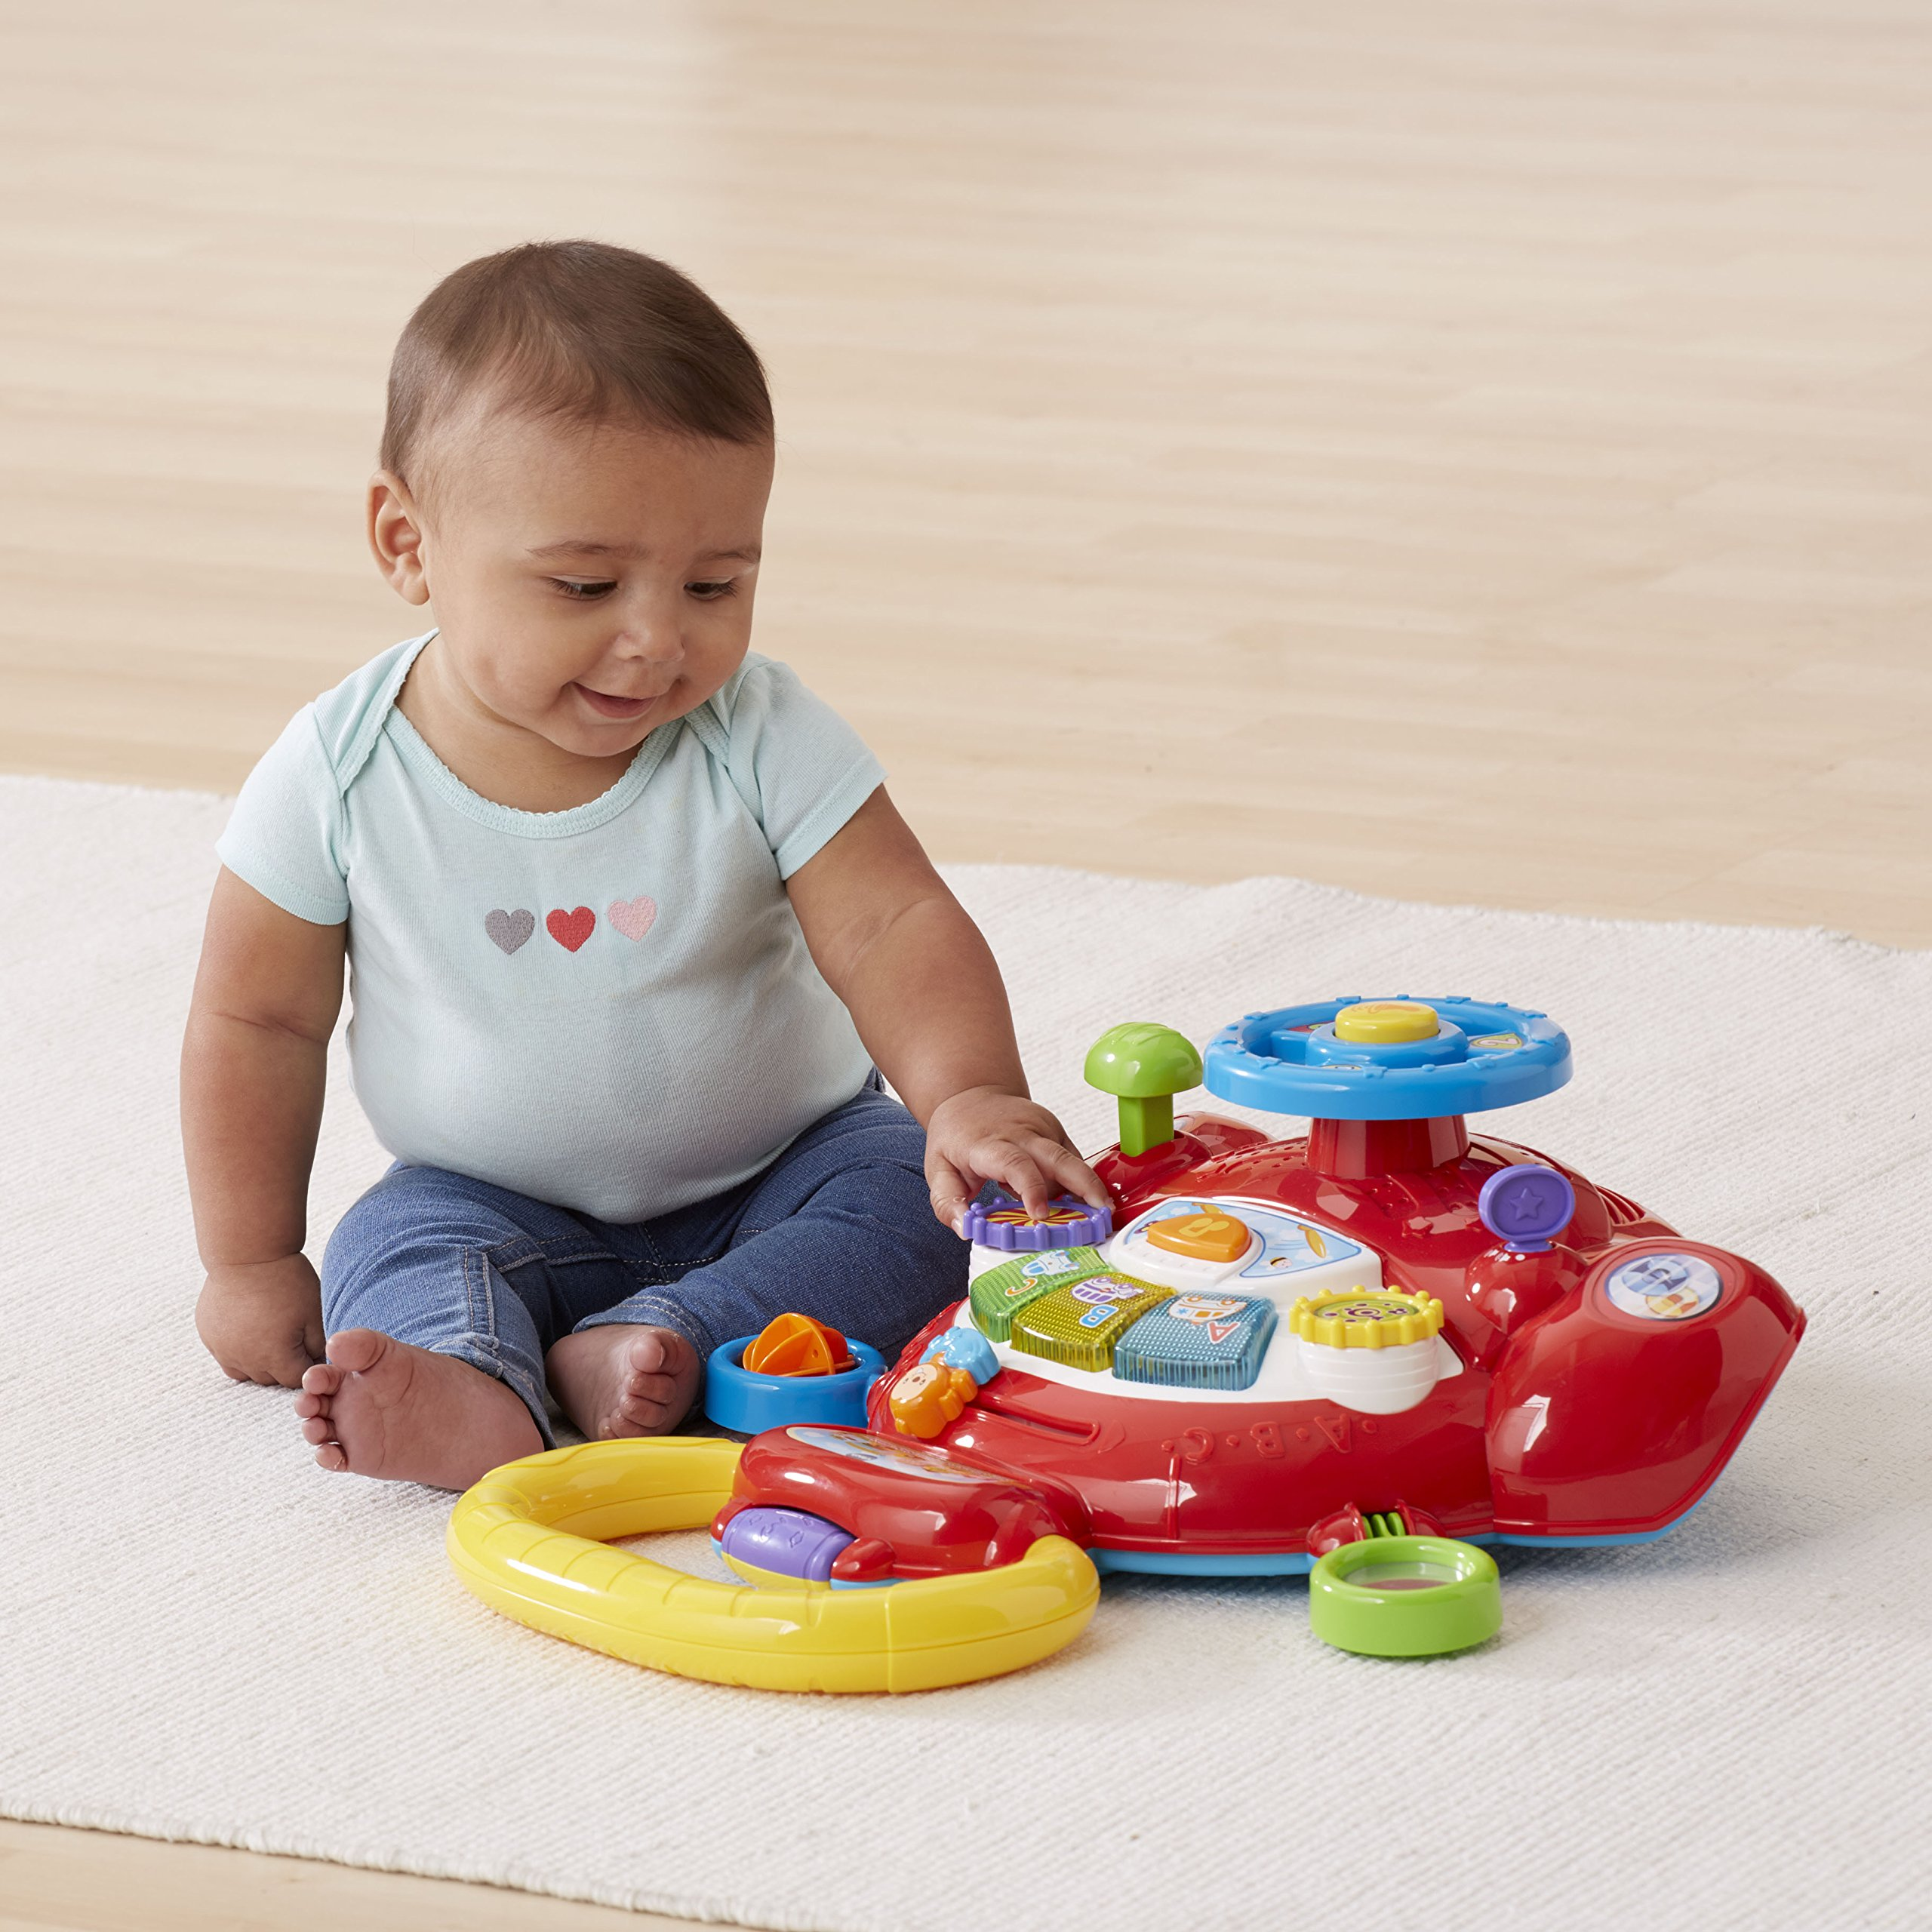 VTech Sit, Stand and Ride Baby Walker (Frustration Free Packaging) (Amazon Exclusive) by VTech (Image #13)